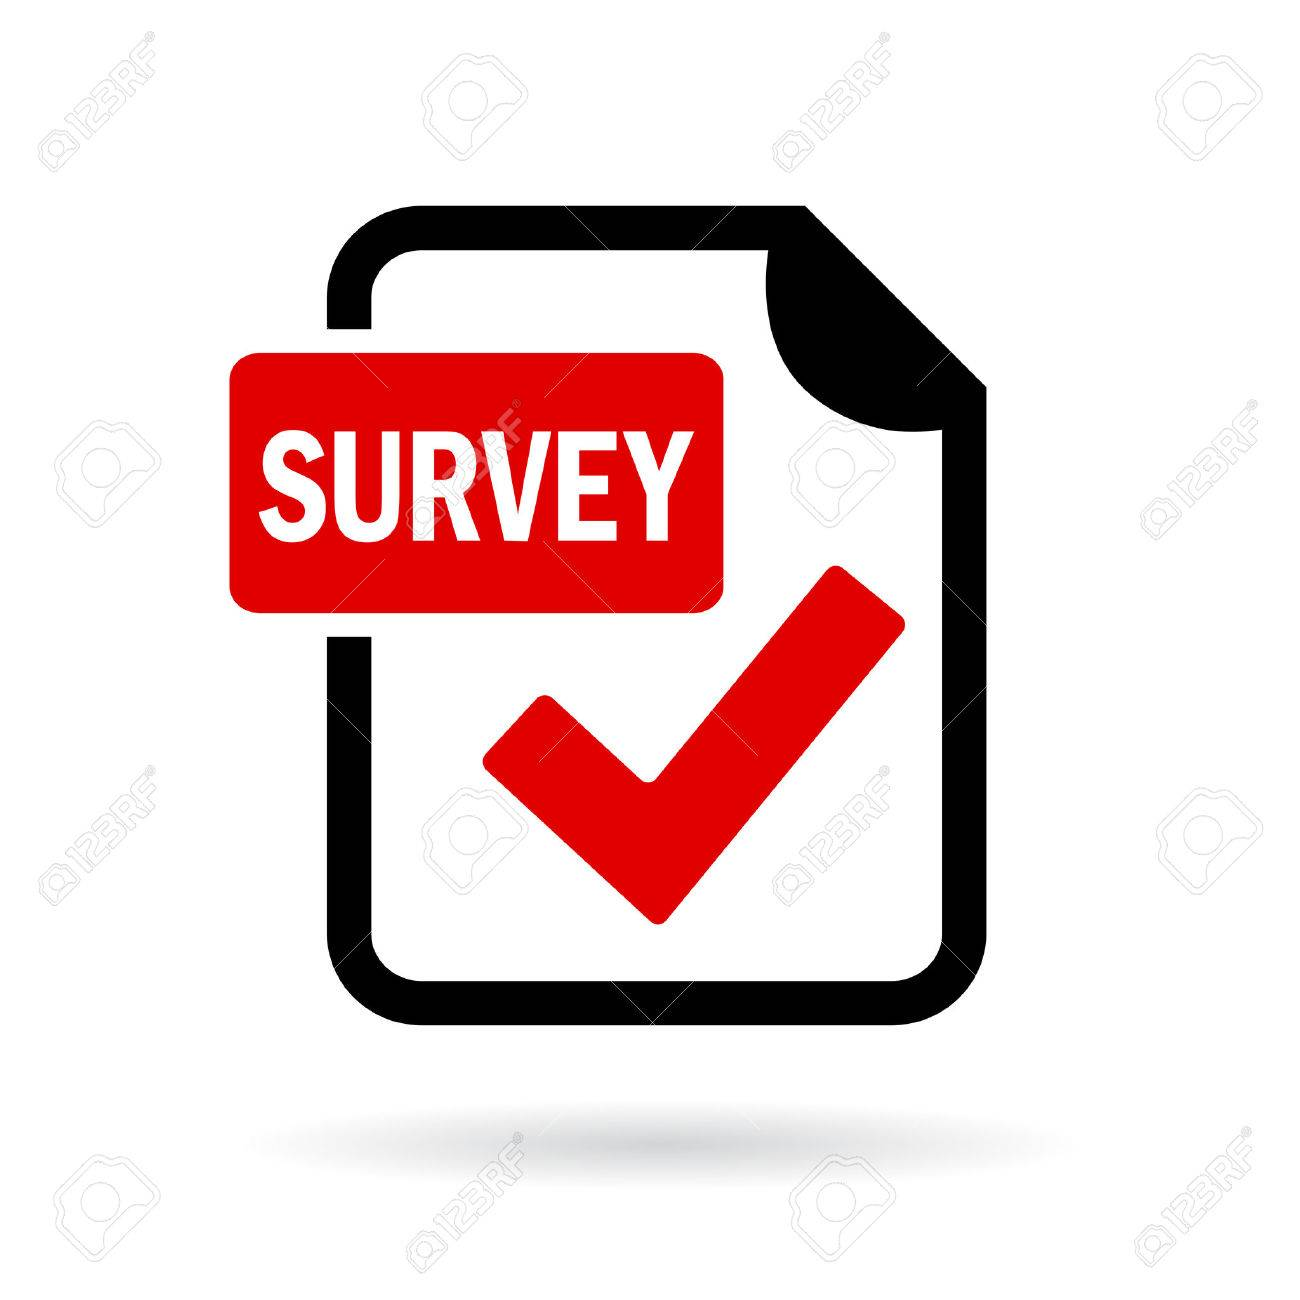 Survey red icon - 56195074